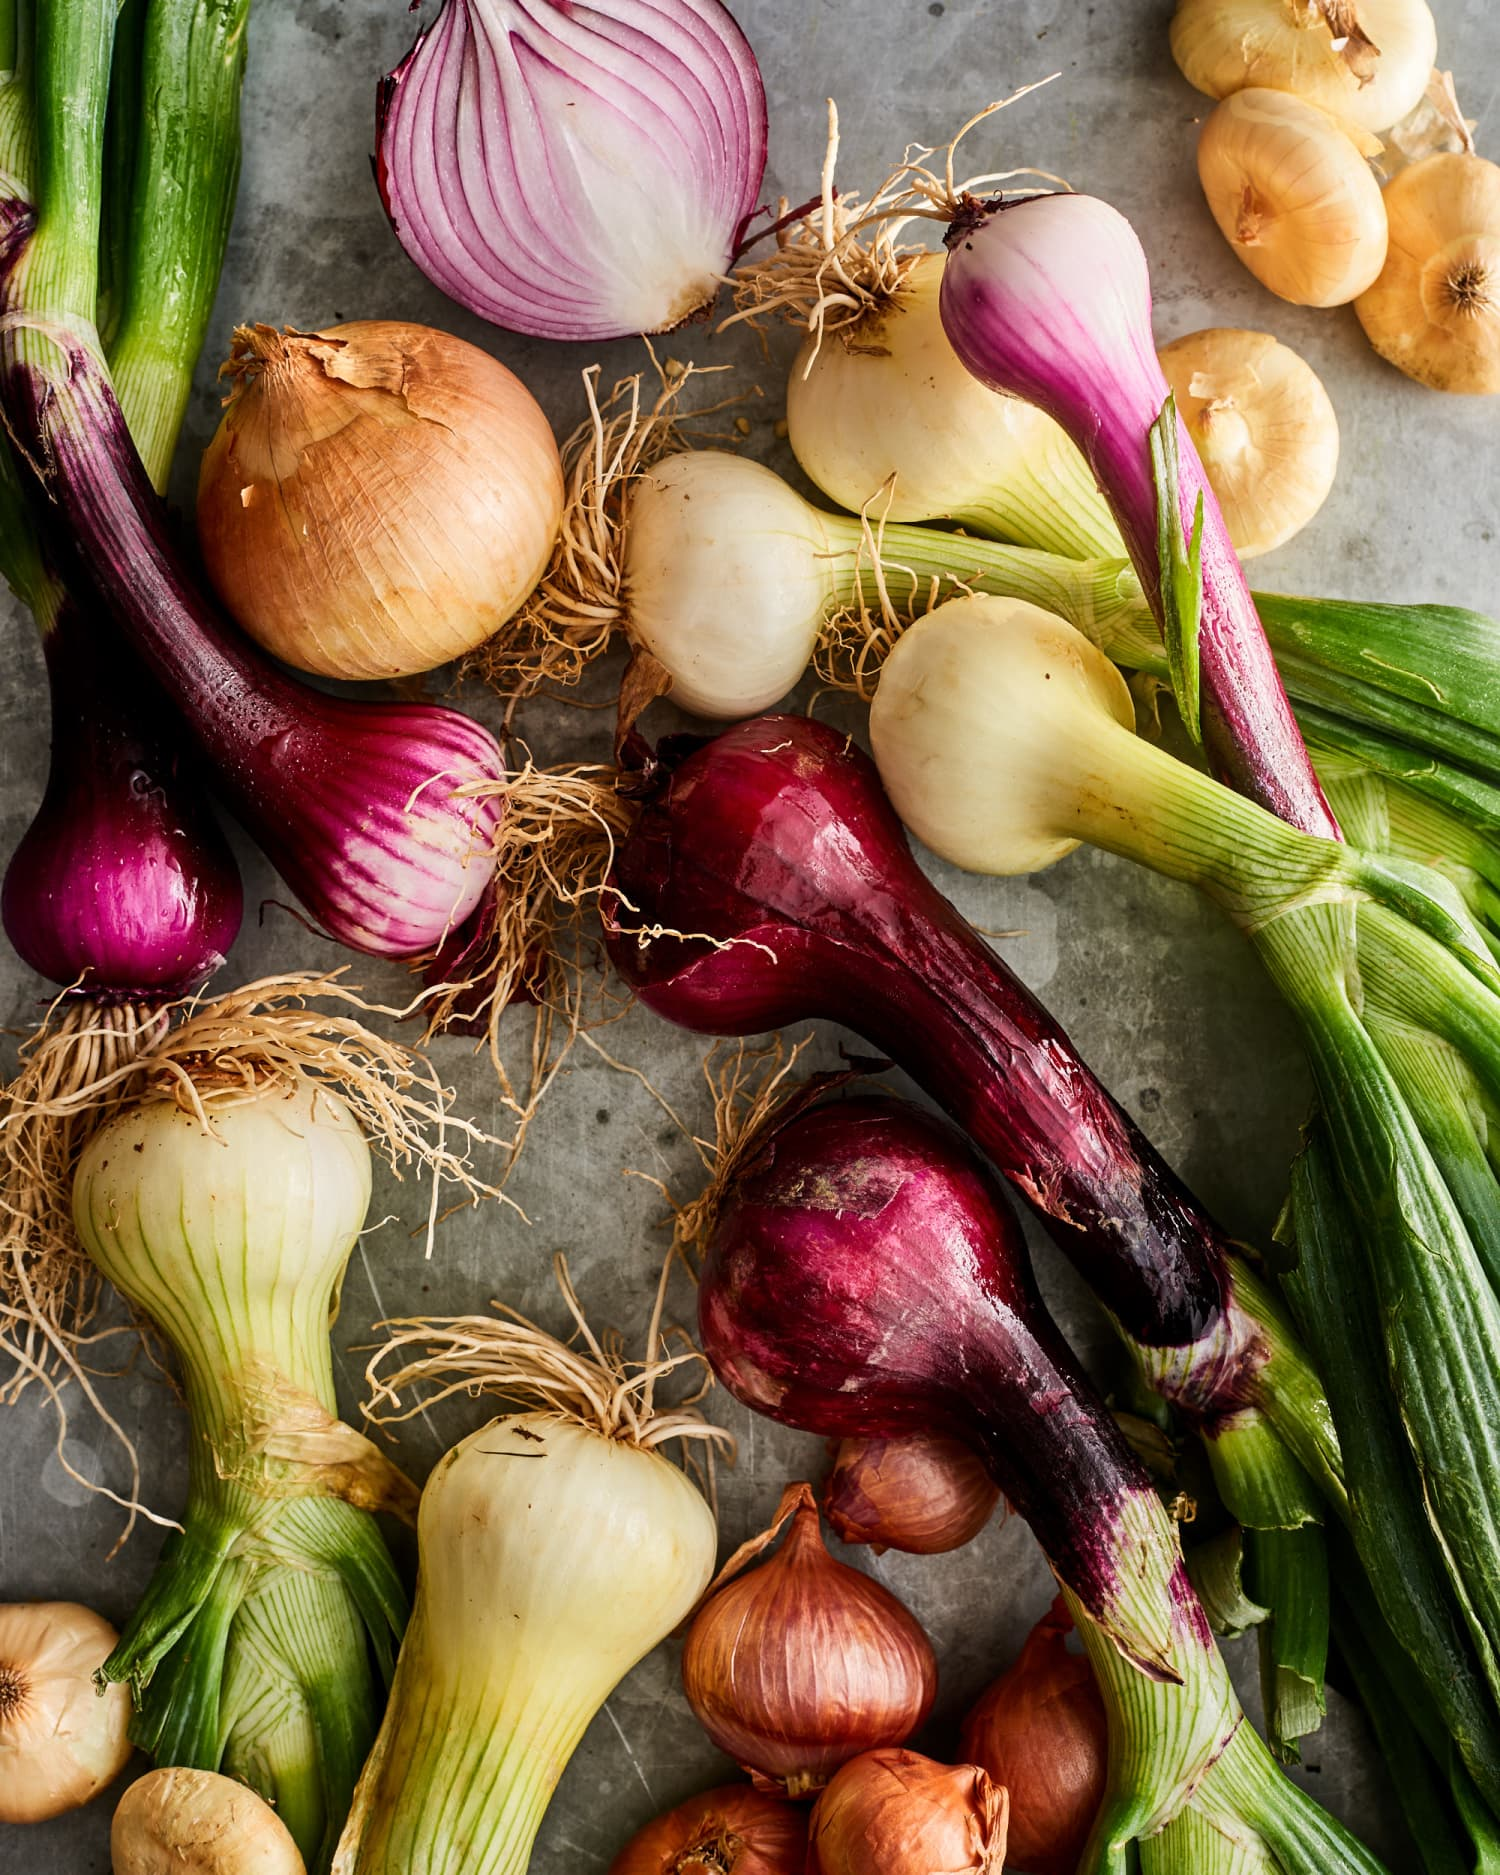 Love Onions? You Need This List of Recipes